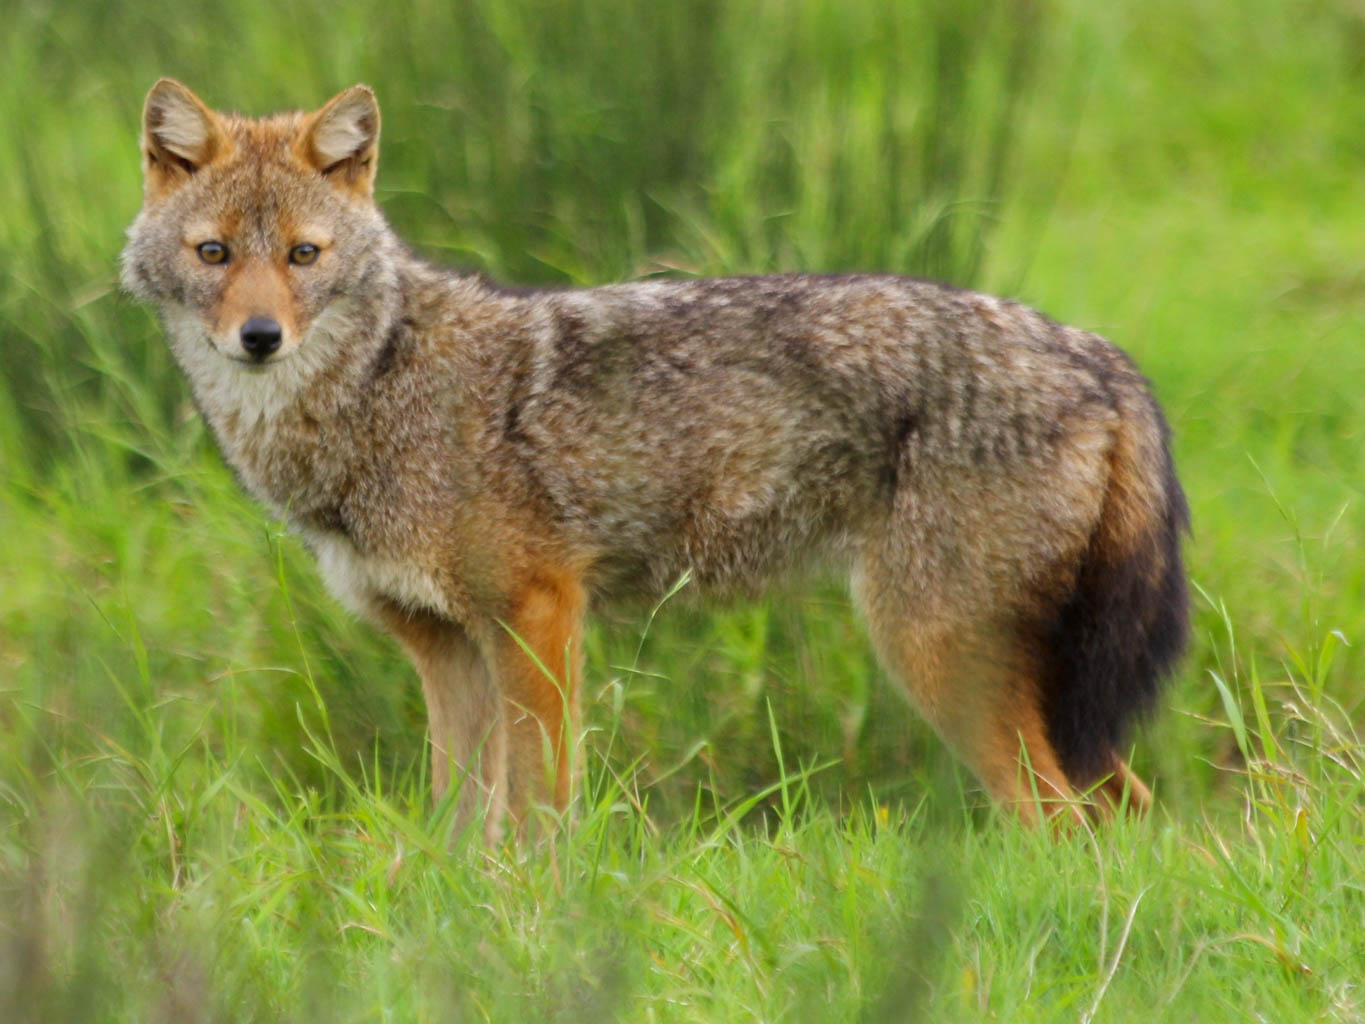 golden jackal-26104.jpg - © European Wilderness Society CC BY-NC-ND 4.0